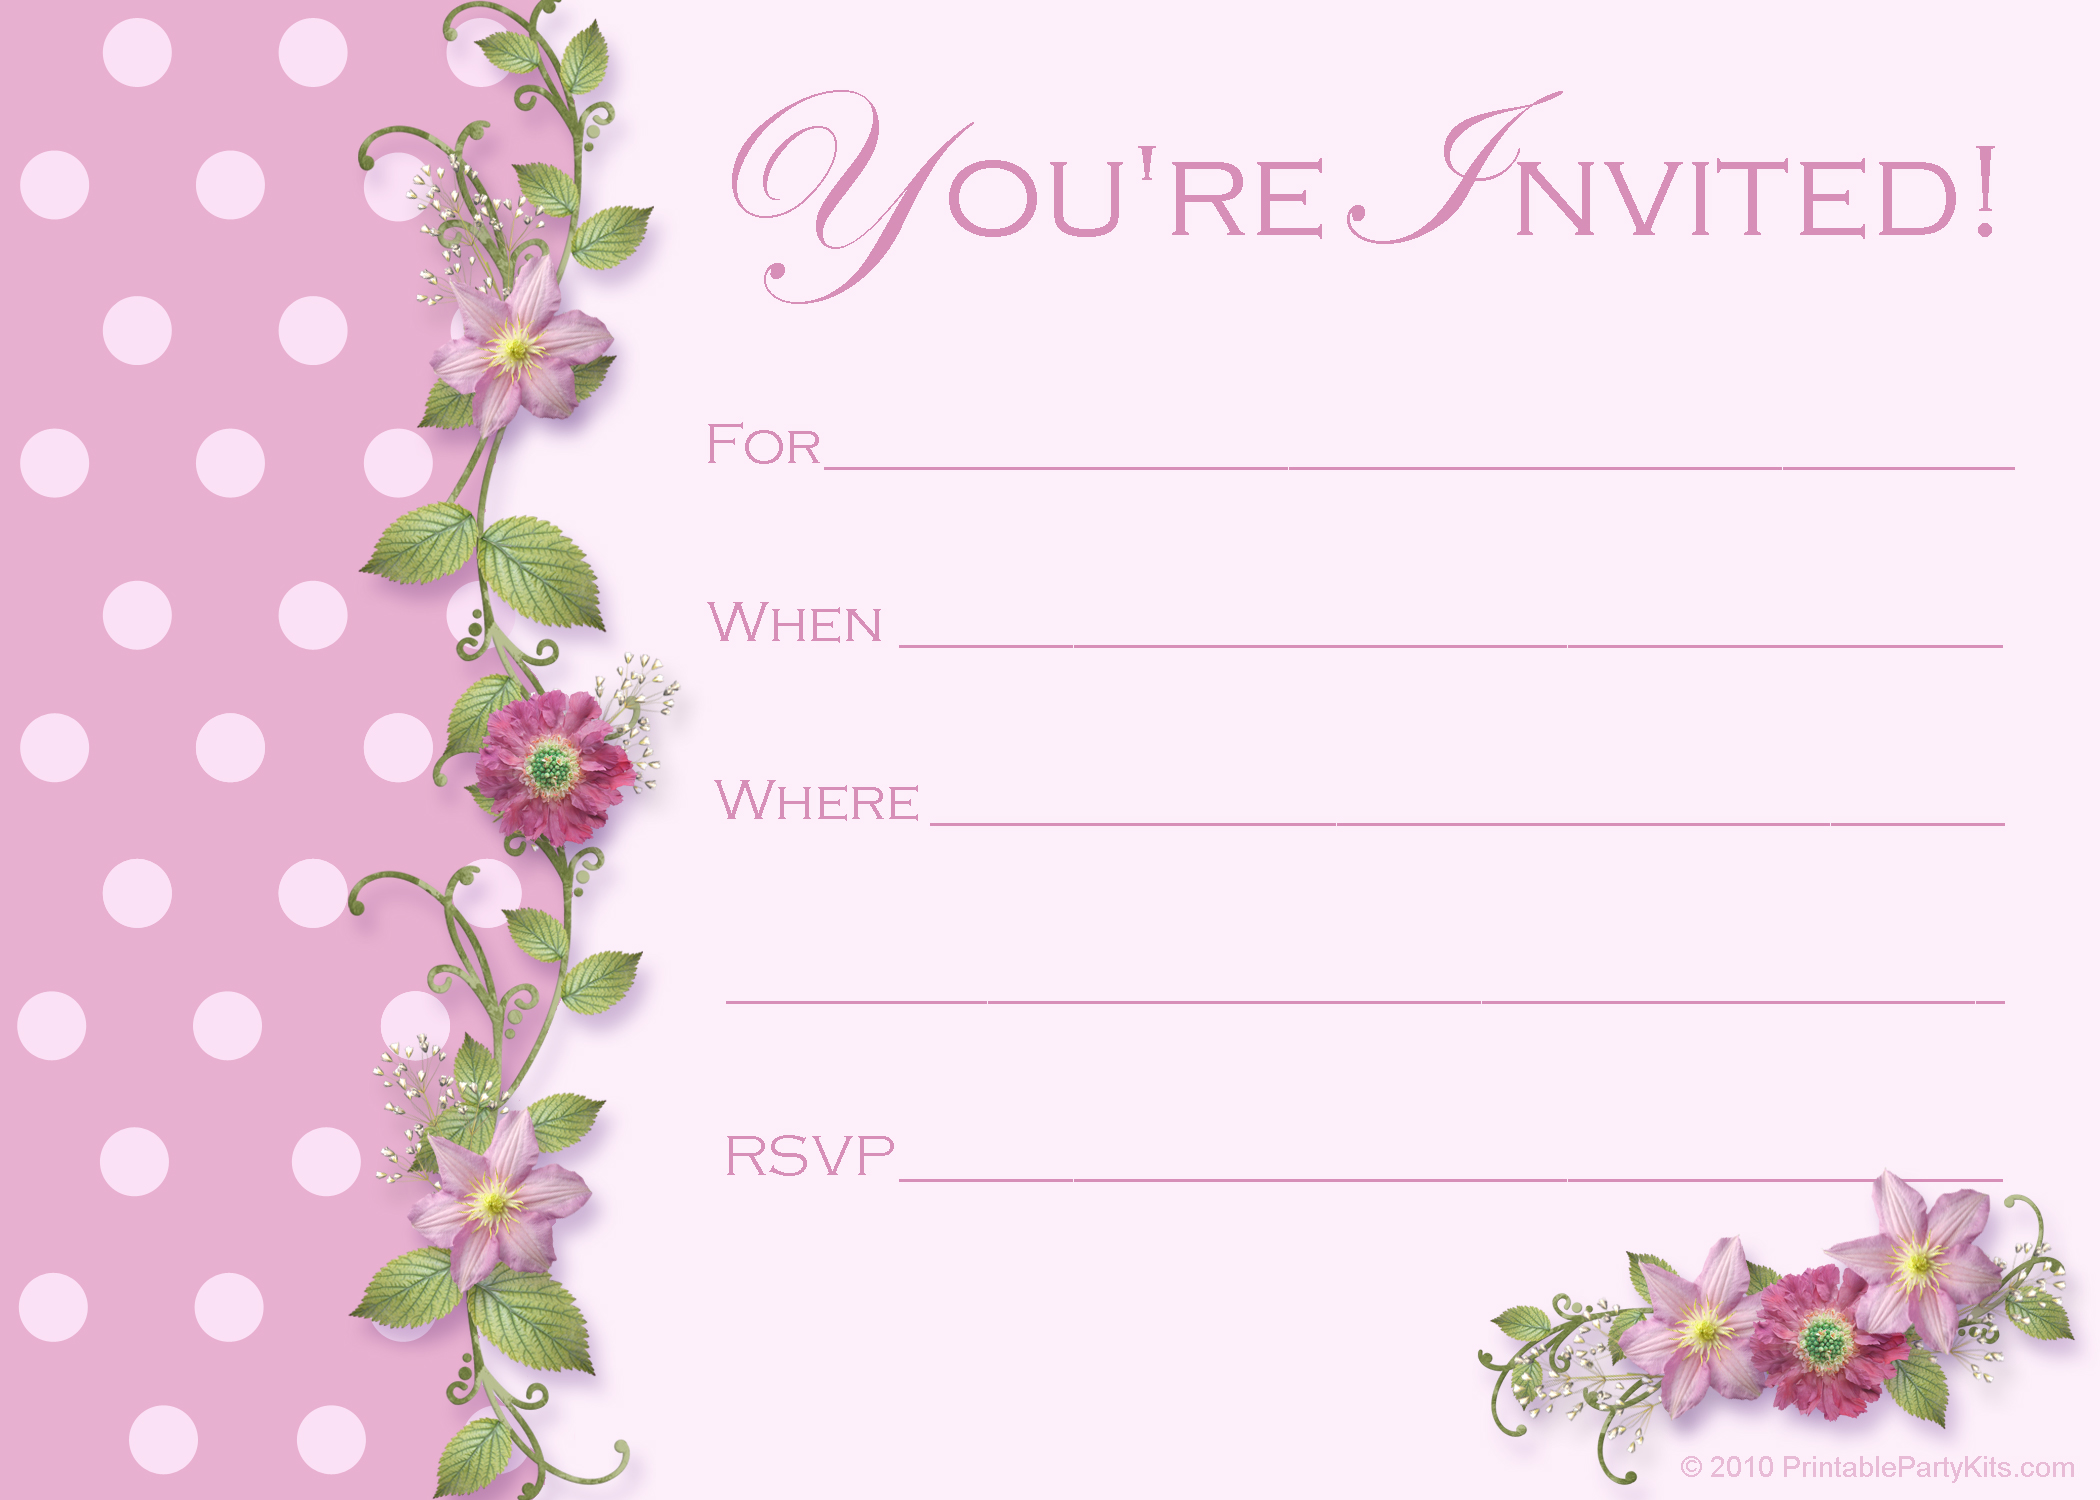 ... to enlarge and download the pink polka dot party invitation template